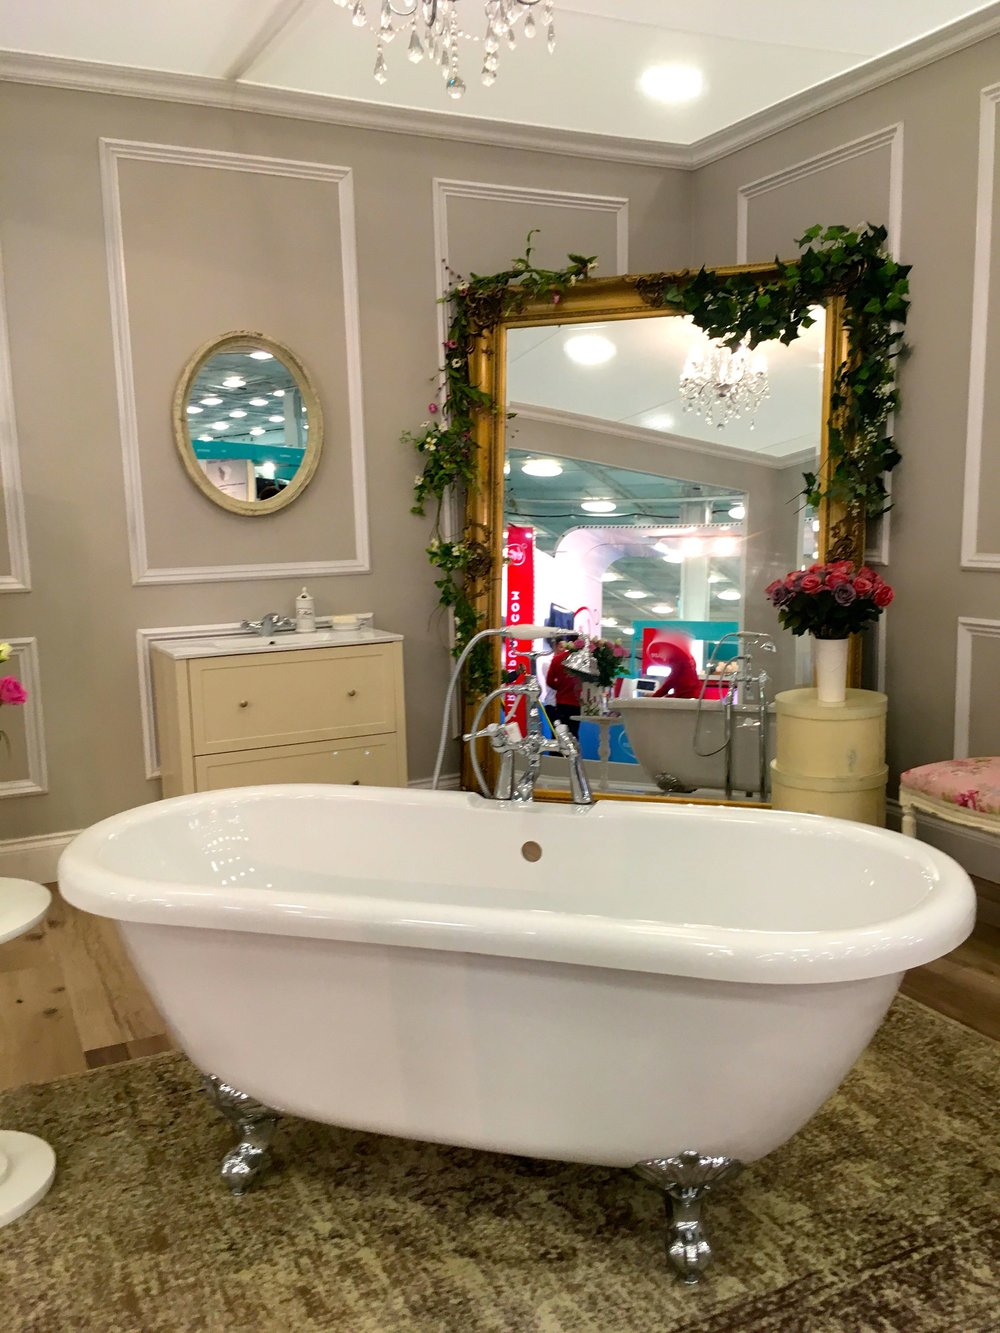 A standalone bathtub and mirror